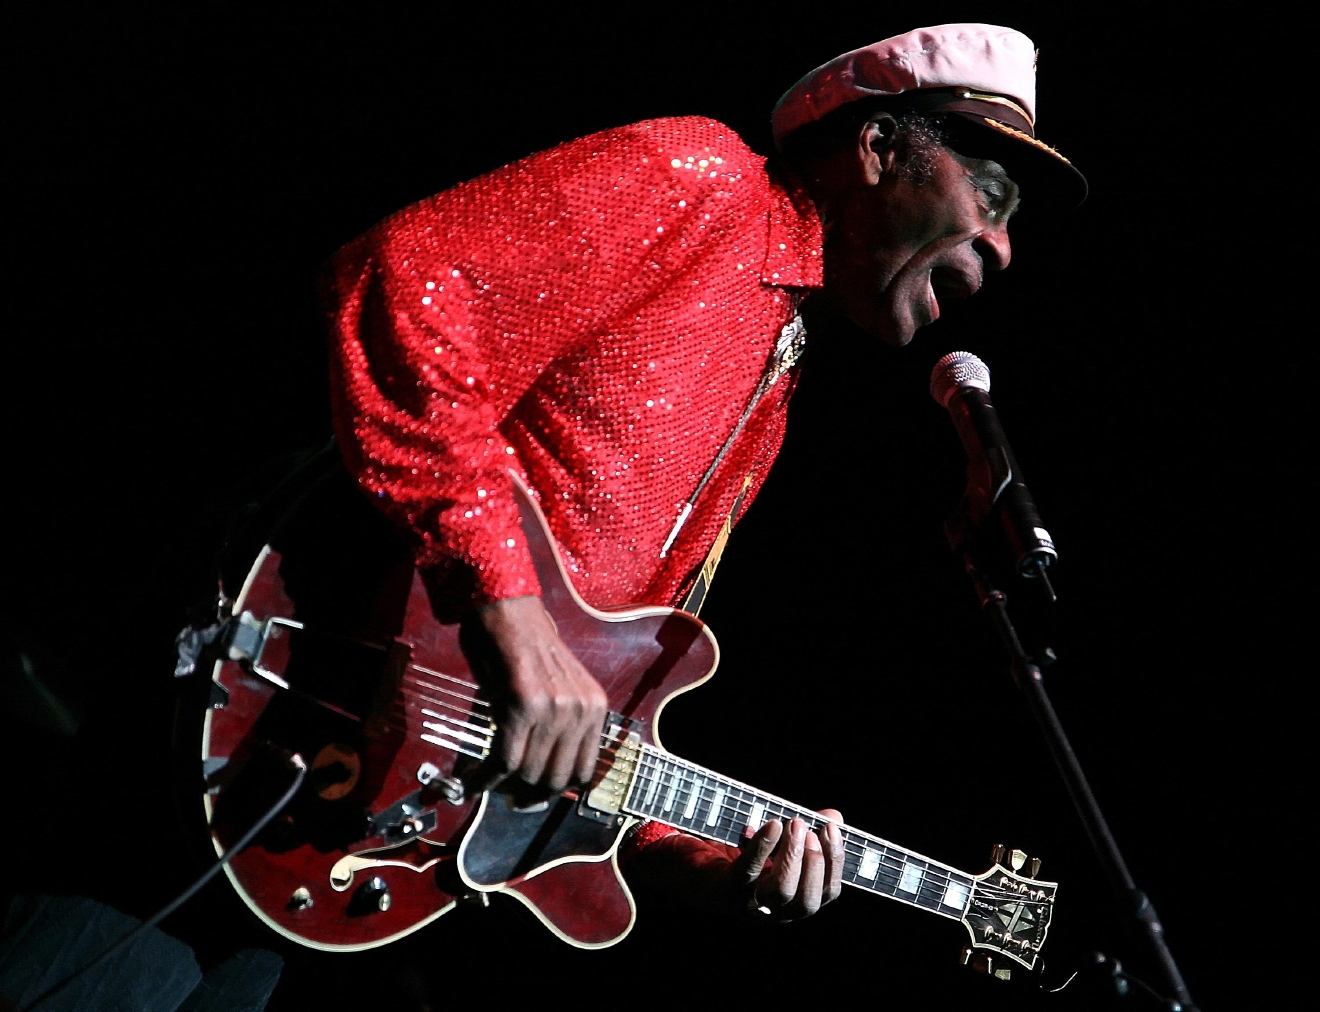 Chuck Berry performing live 'Opening Night at WSA', the world's largest footwear and accessories marketplace, at the MGM Grand.  The show benefactor, Soles4Souls, has agreed to donate 100,000 pairs of shoes to African countries, with the footwear to be delivered during 2007 on several international relief trips. Las Vegas, Nevada - 01.02.07  Featuring: Chuck Berry performing live Where: United States When: 01 Feb 2007 Credit: Mike Stotts/ WENN